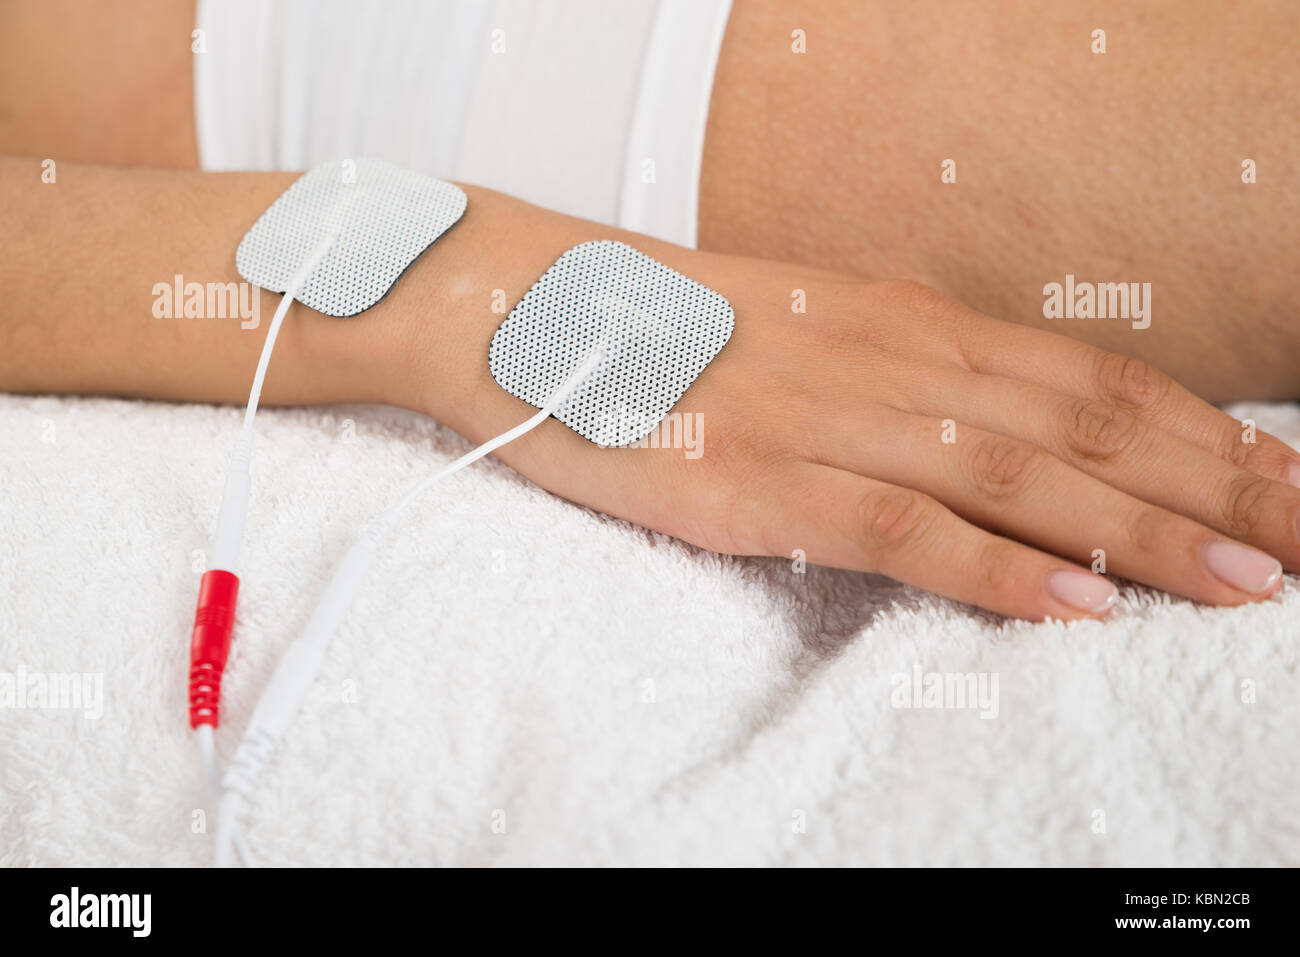 Close-up Of A Woman With Electrodes On Her Hand - Stock Image